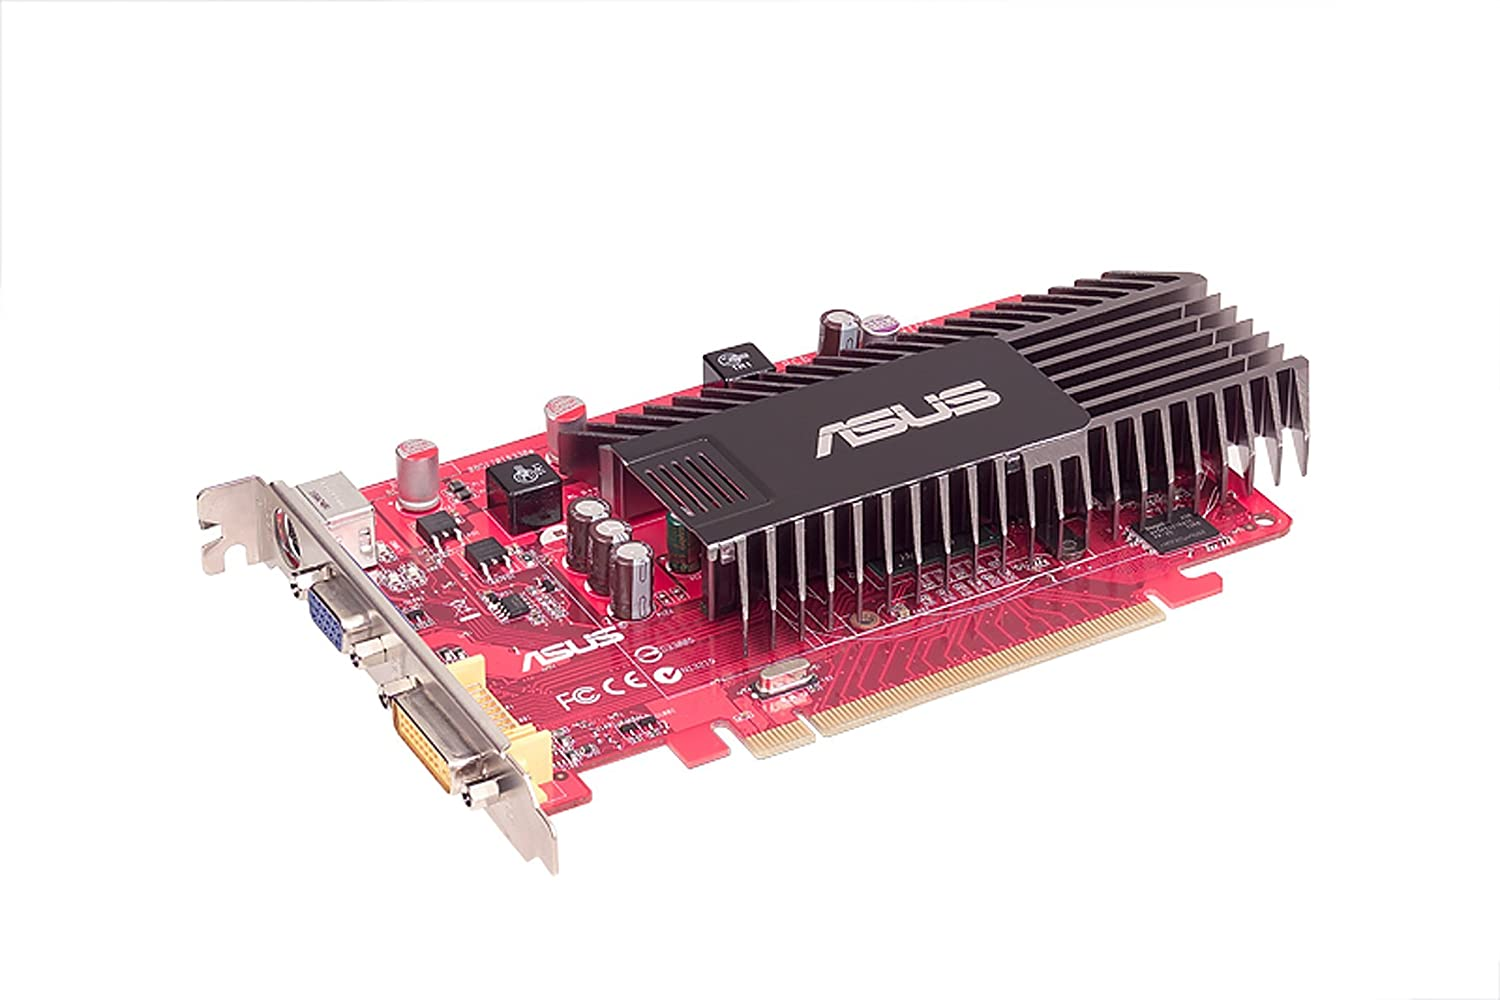 2x ATI RADEON HD 3450 256MB 64Bits PCI-E x16 DMS-59 Full Height Video Card X398D